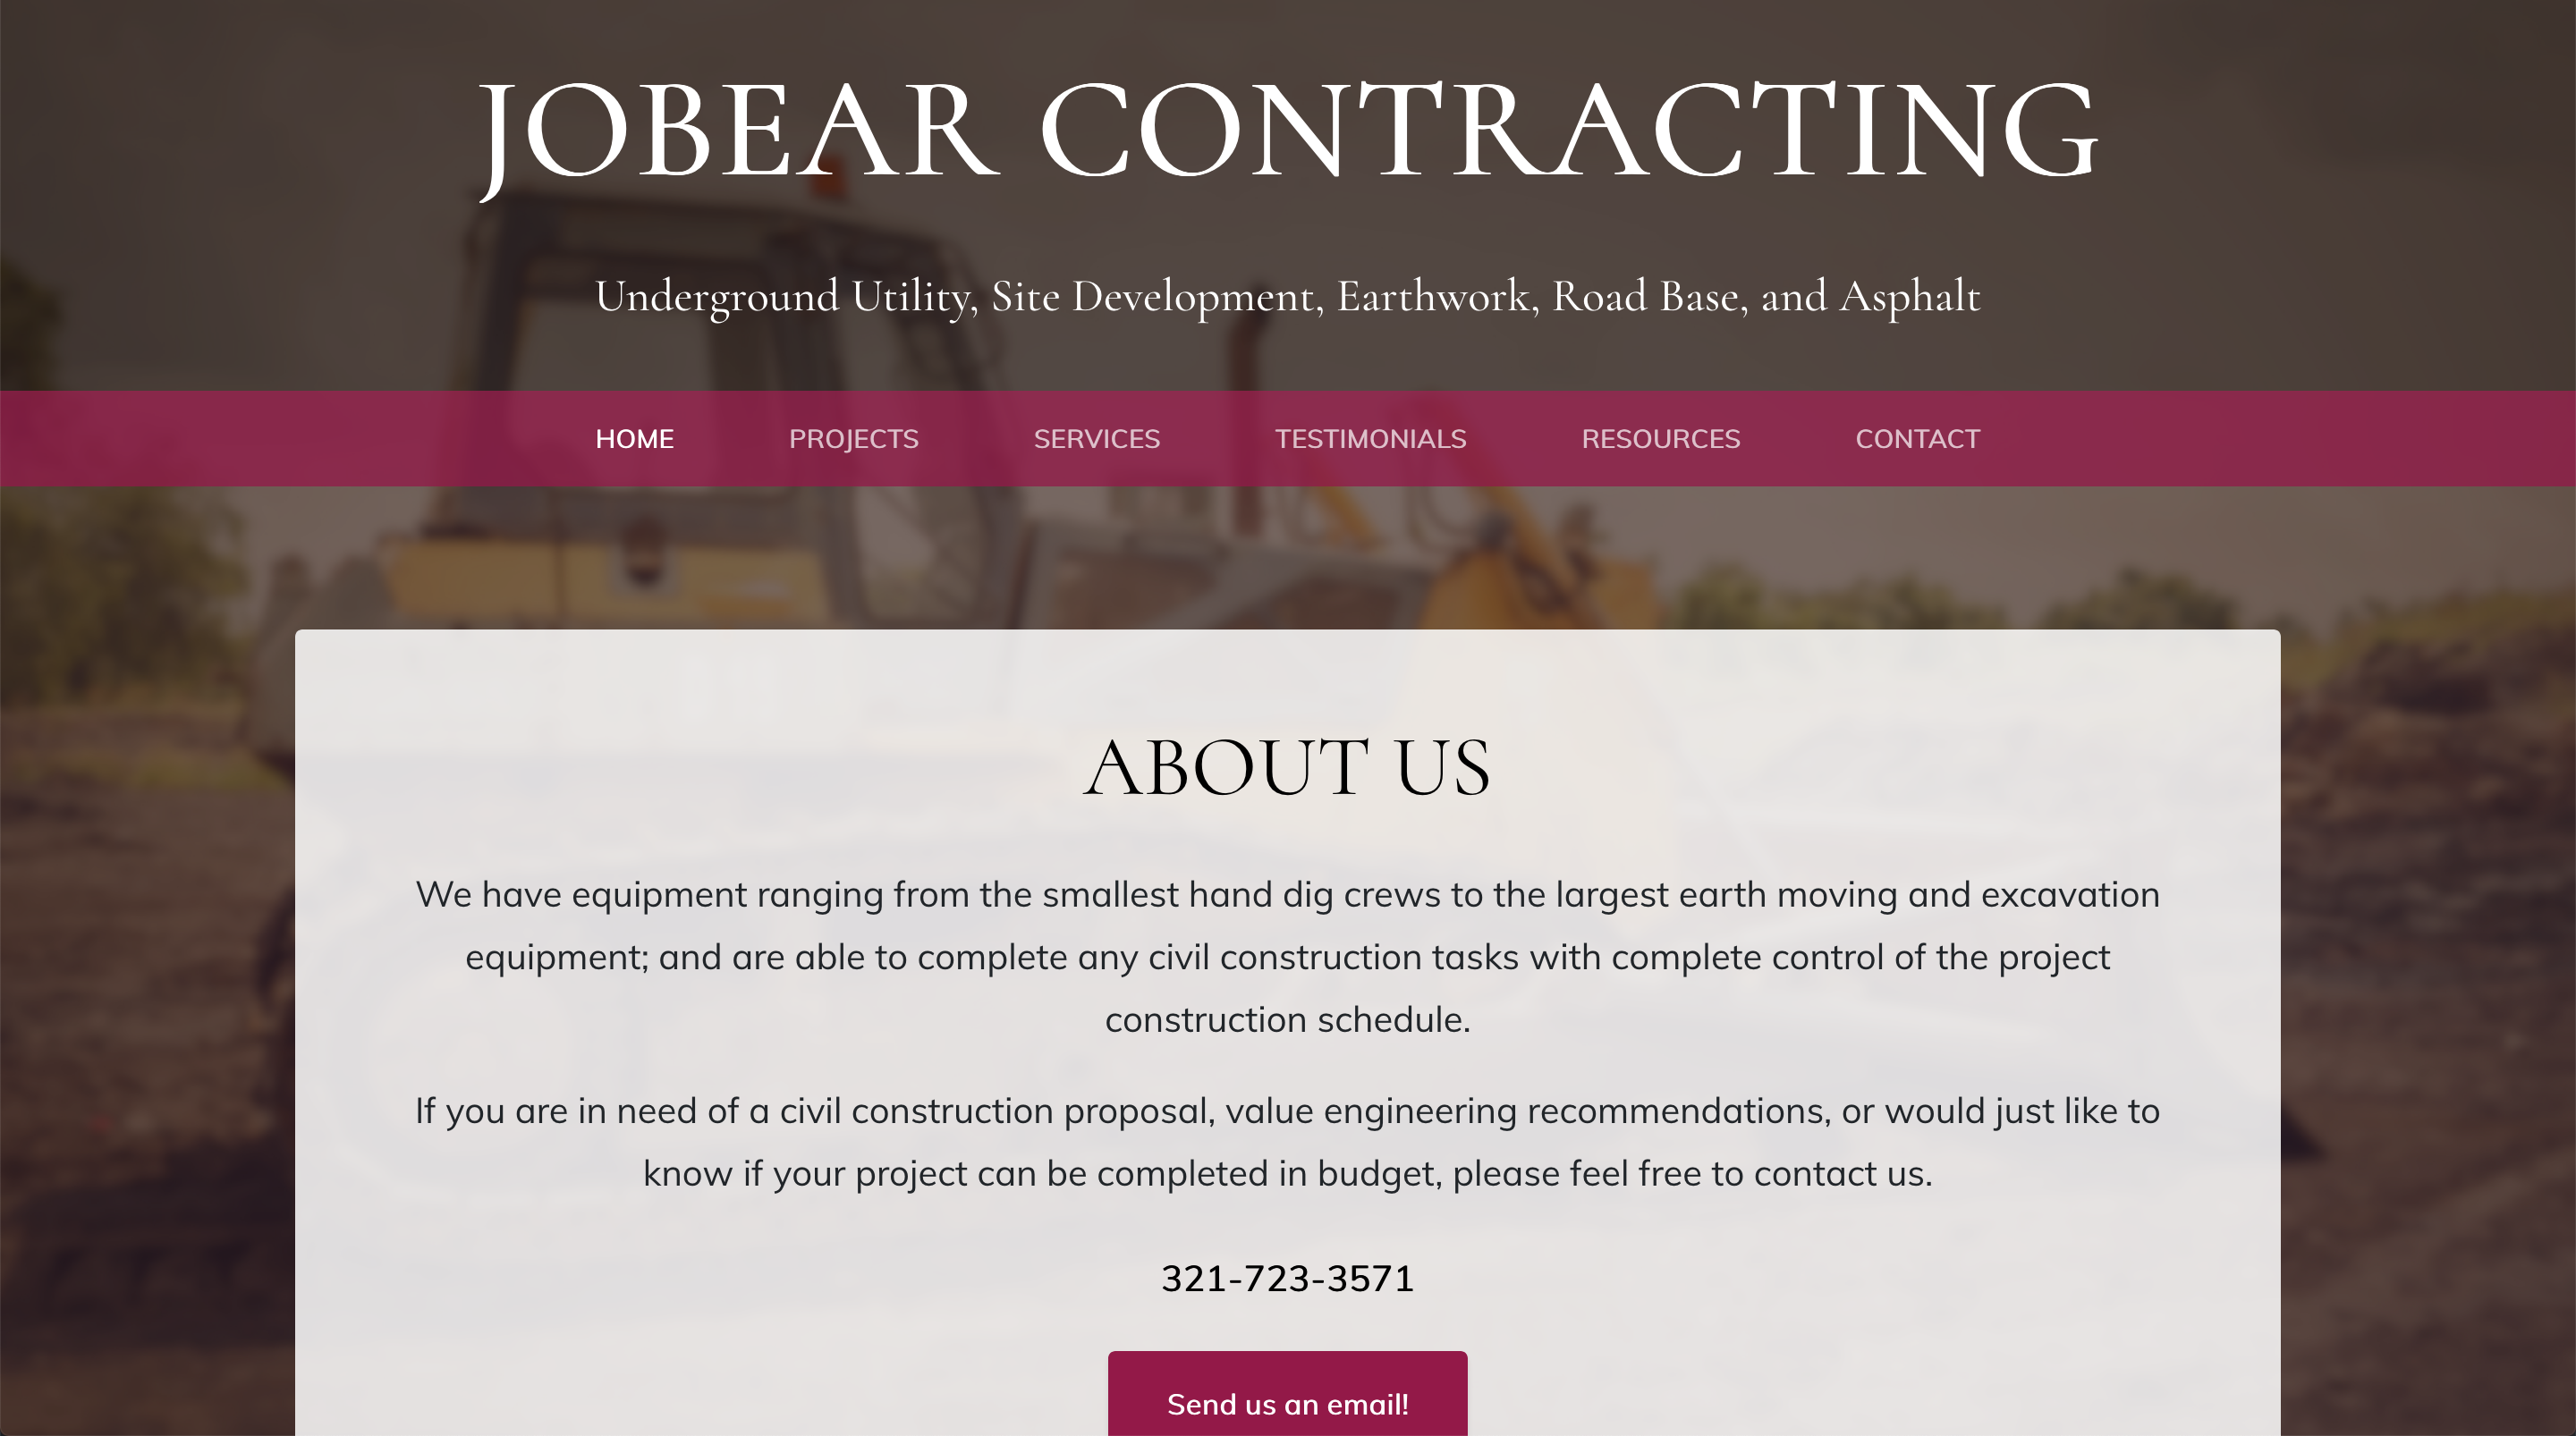 Jobear Contracting, Inc. Homepage